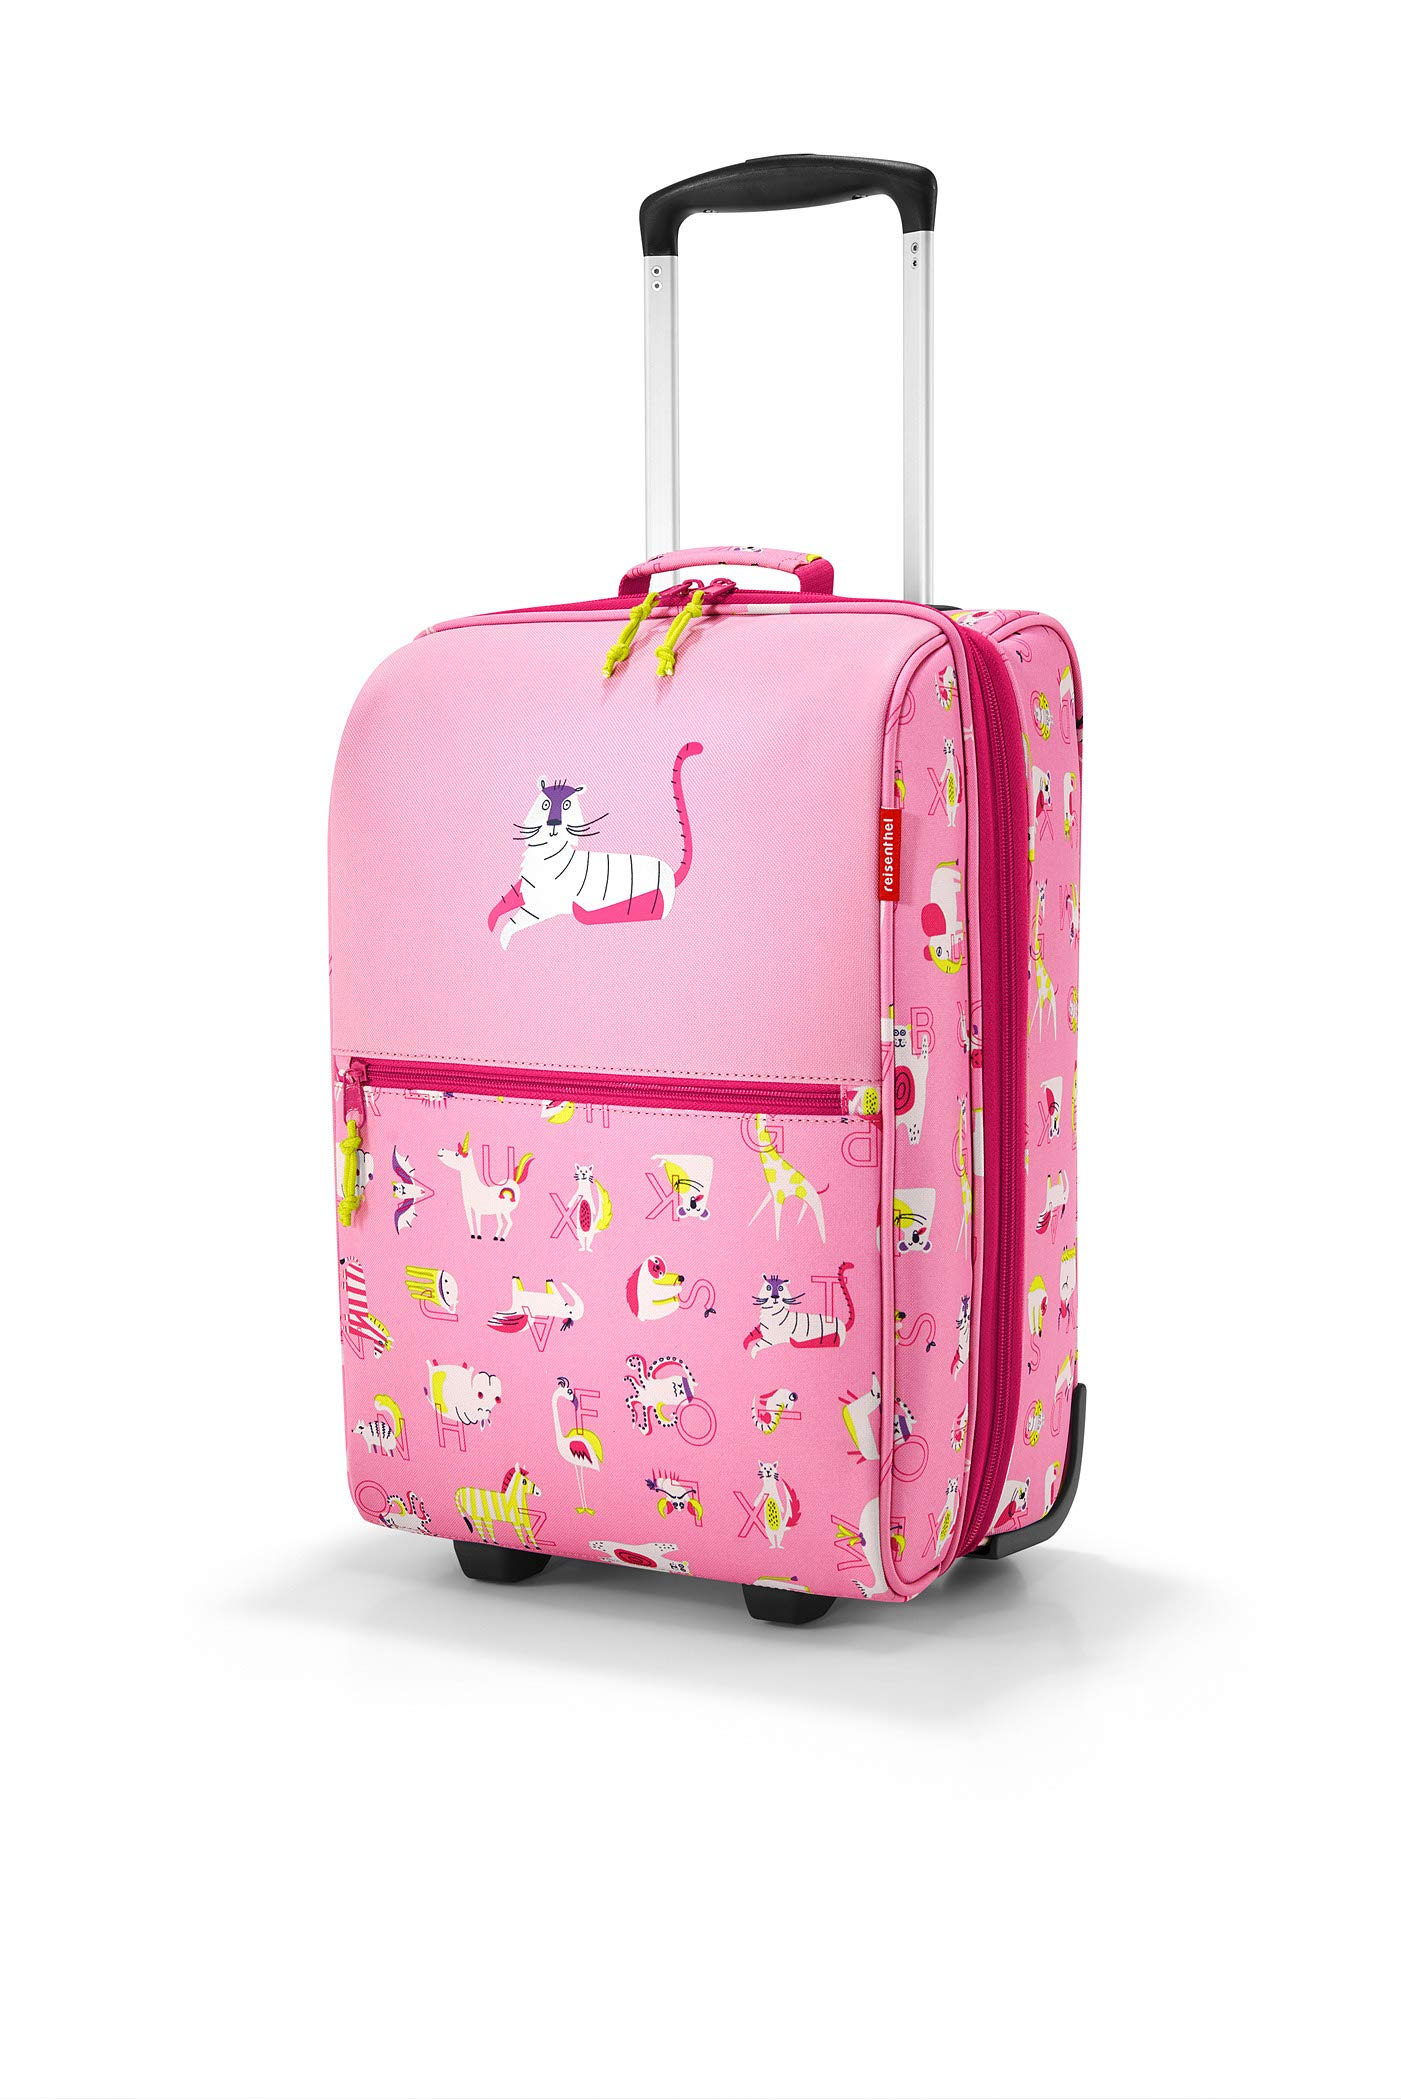 reisenthel Trolley XS Kids Luggage, Lightweight Compact Roller Bag, ABC Friends Pink